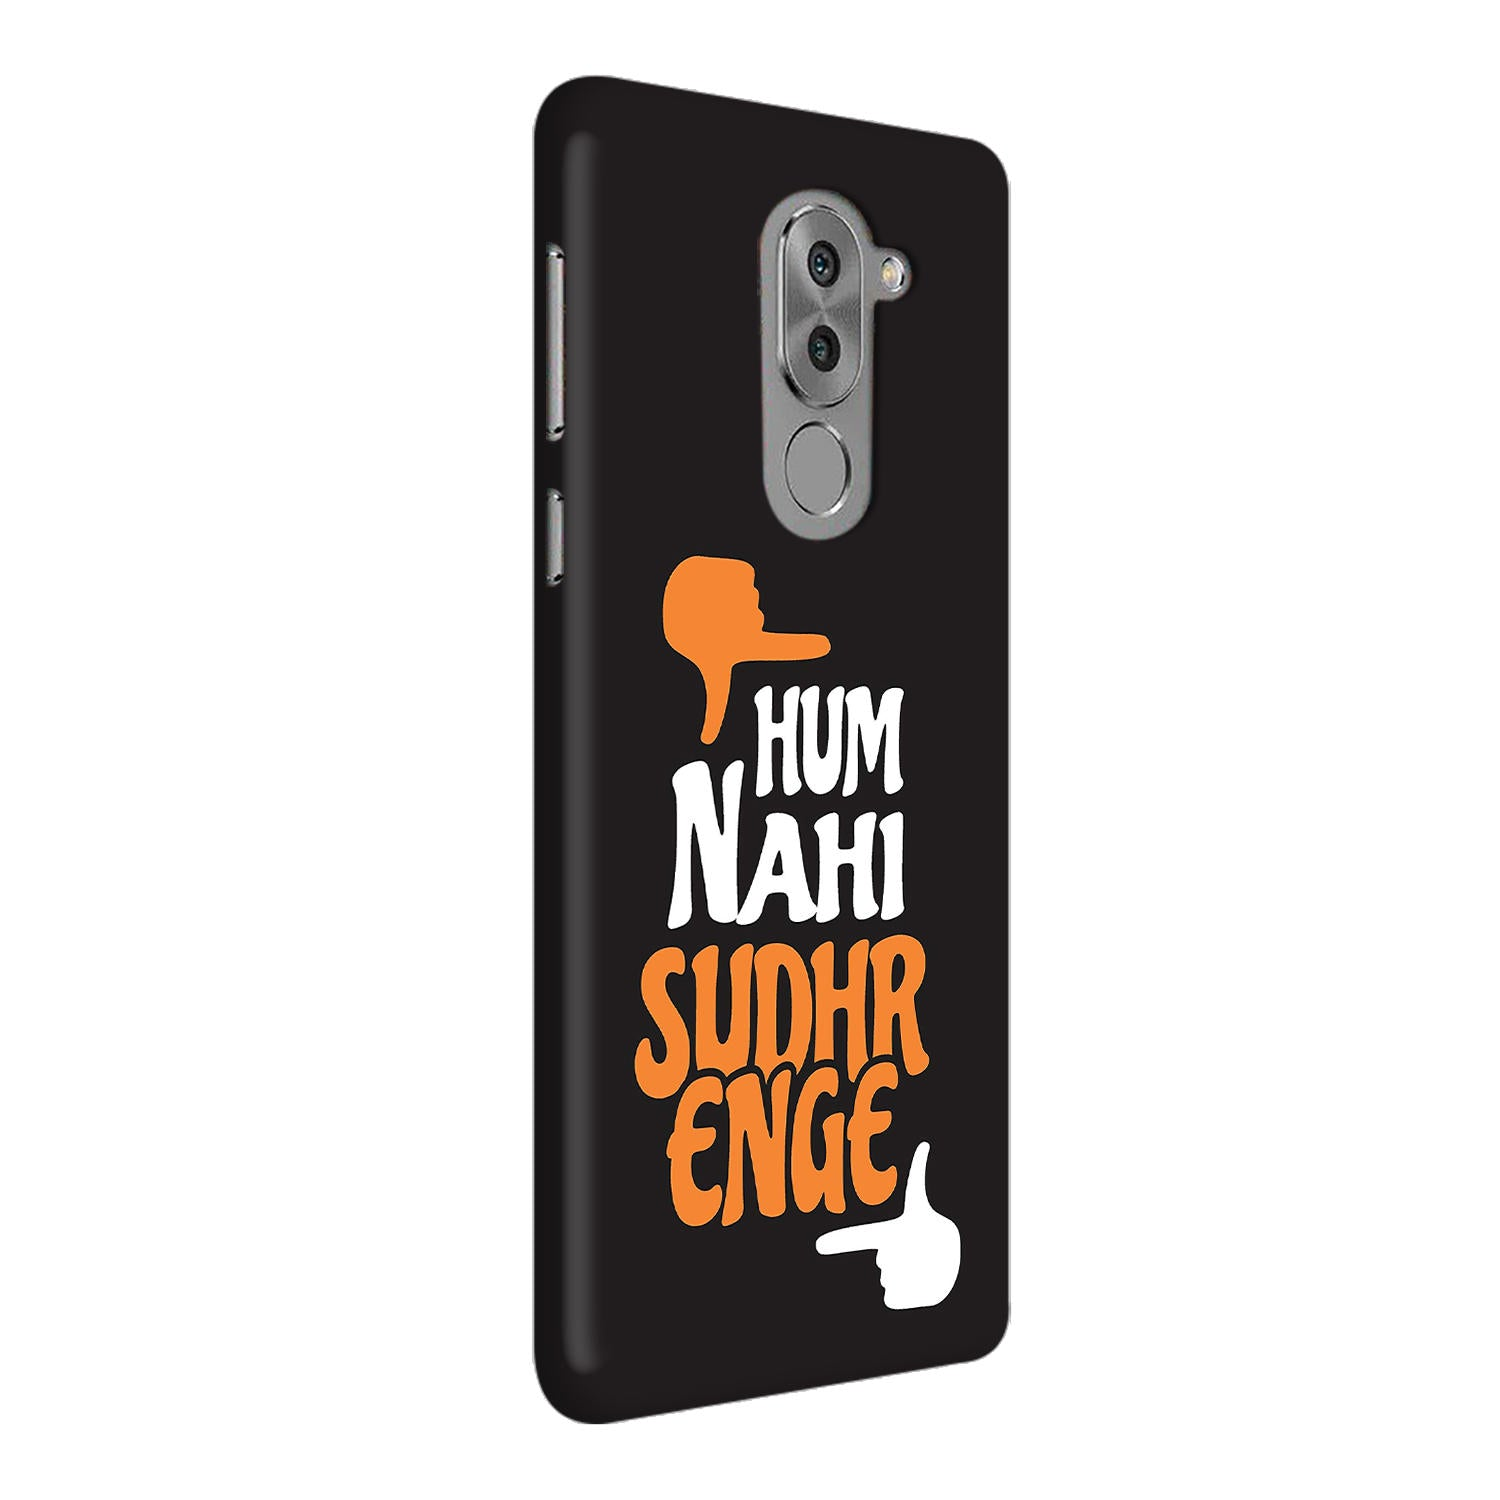 Hum Nahi Sudhrenge Funny Quote Honor 6X Mobile Cover Case